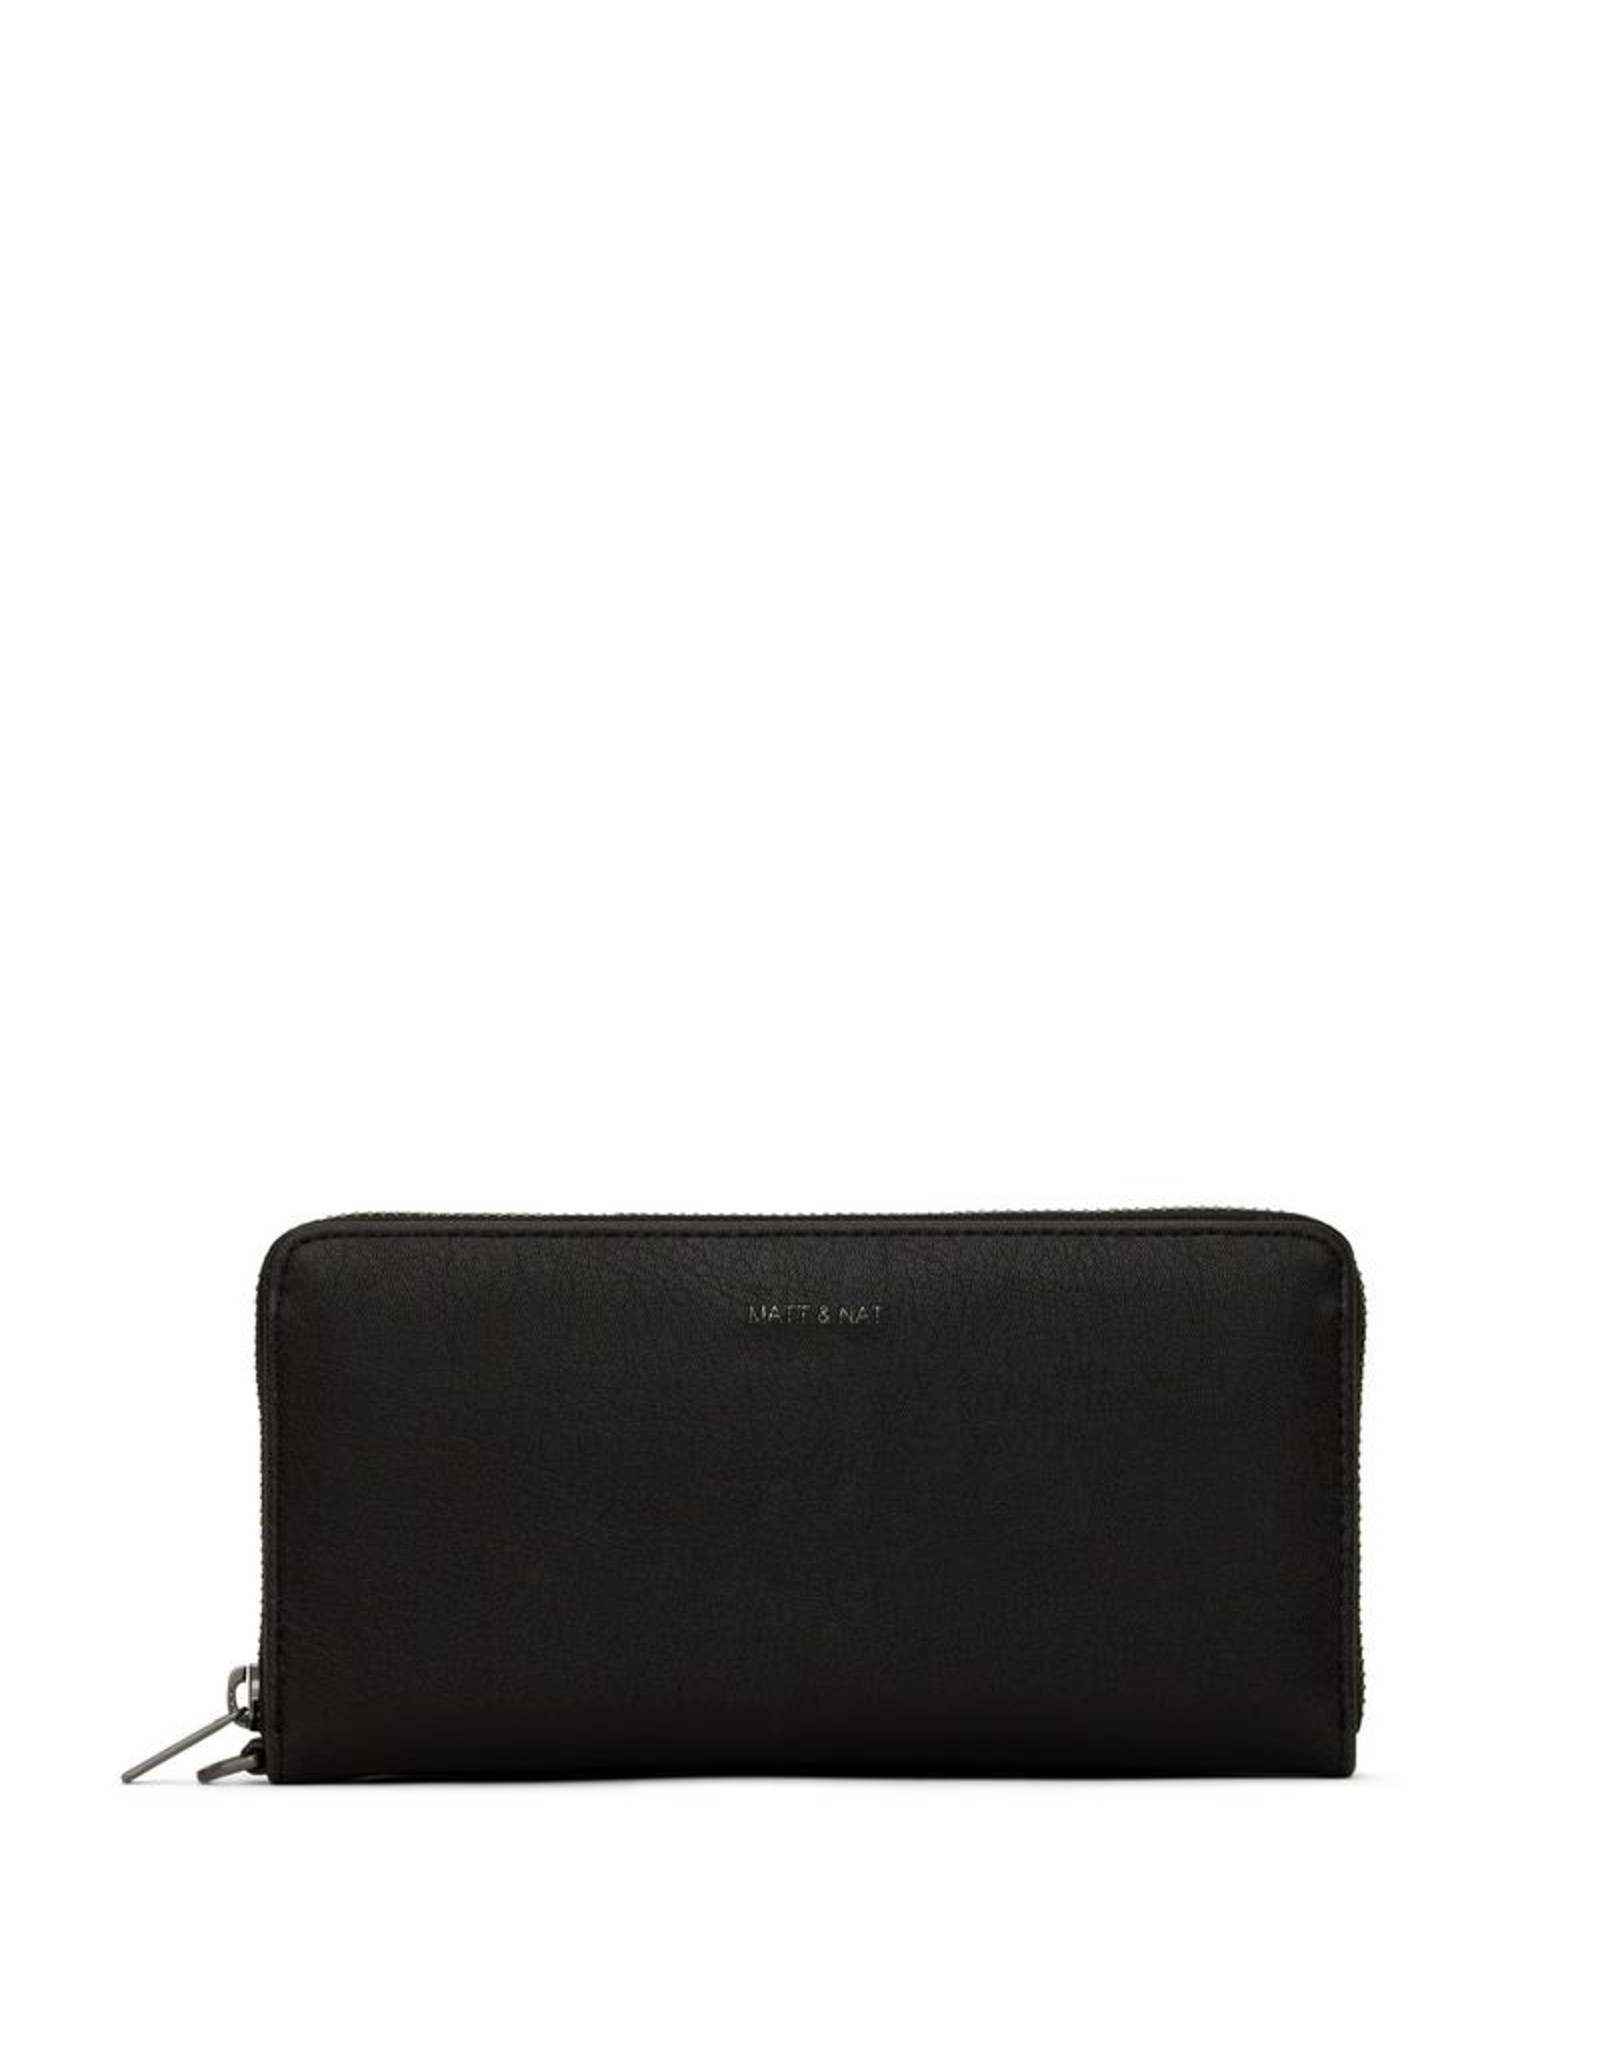 Matt & Nat - Elm Wallet With Wrist Strap/Black